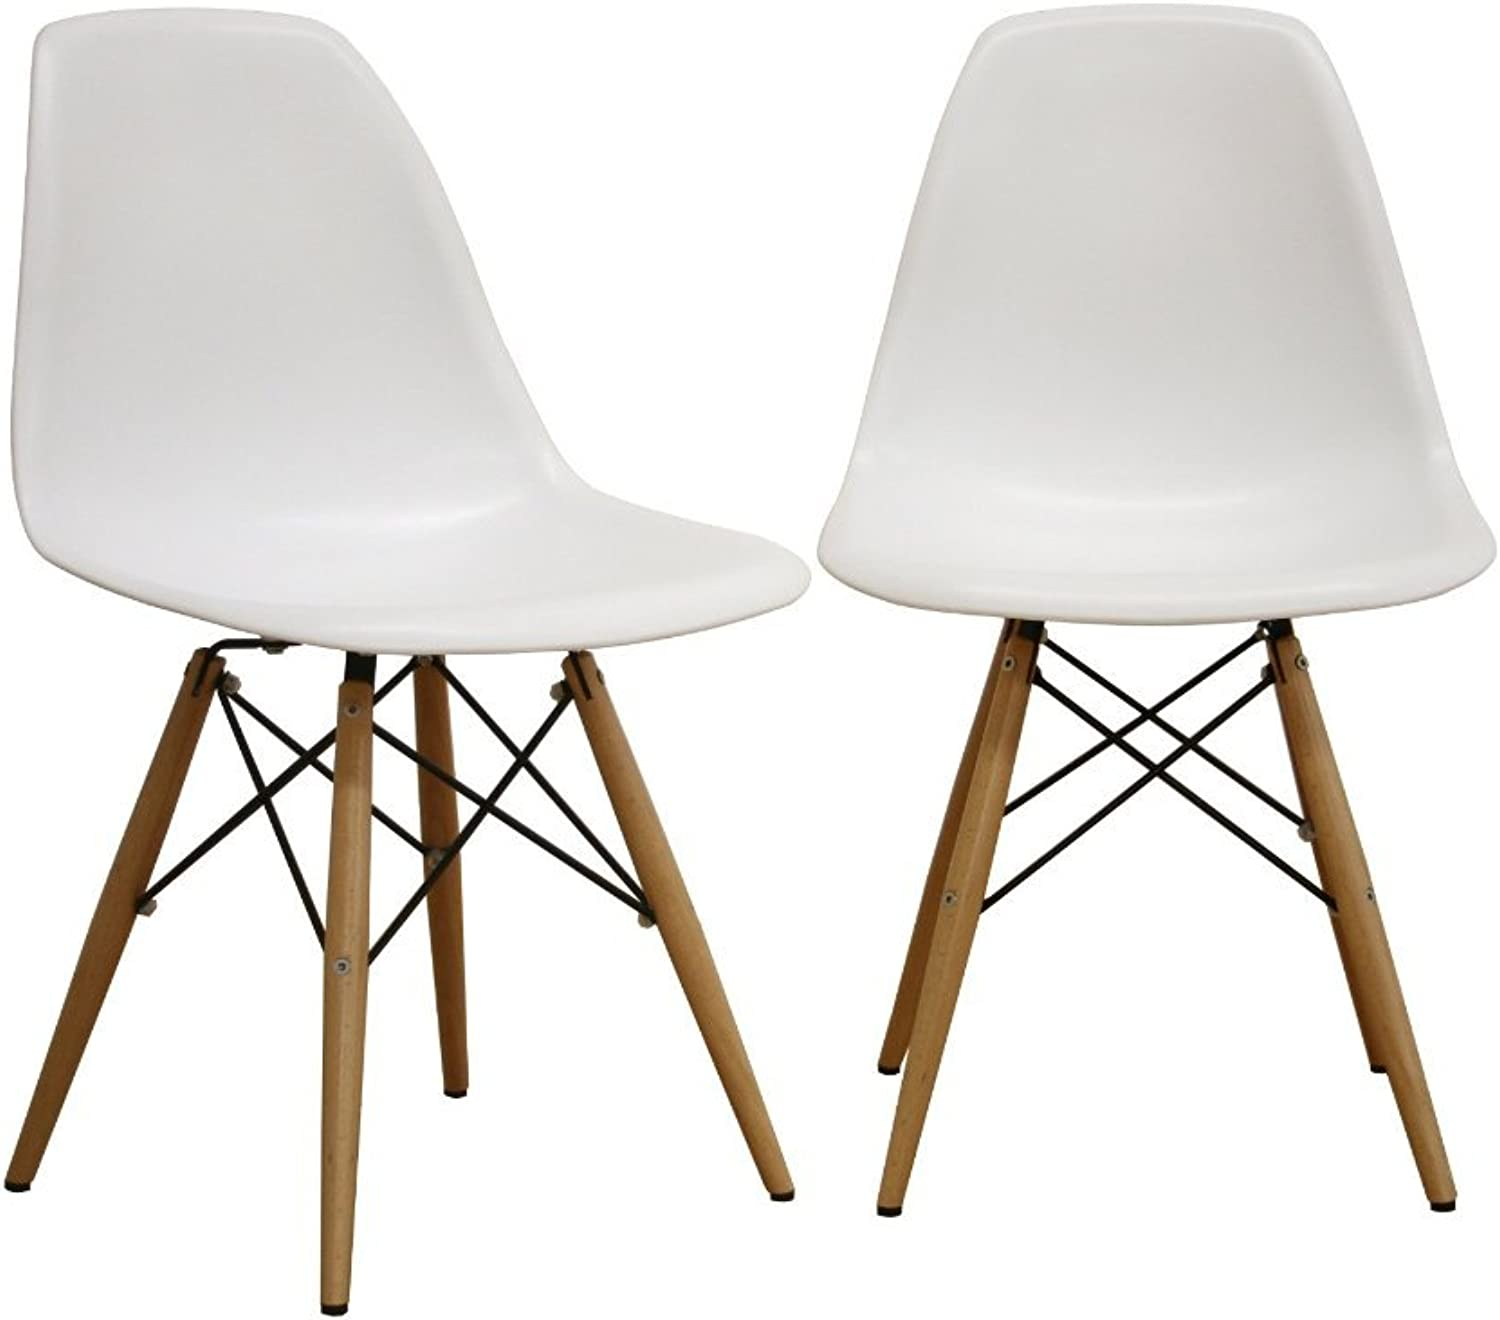 Eames Eiffel White Dining Room Chairs, Set of Two (2)